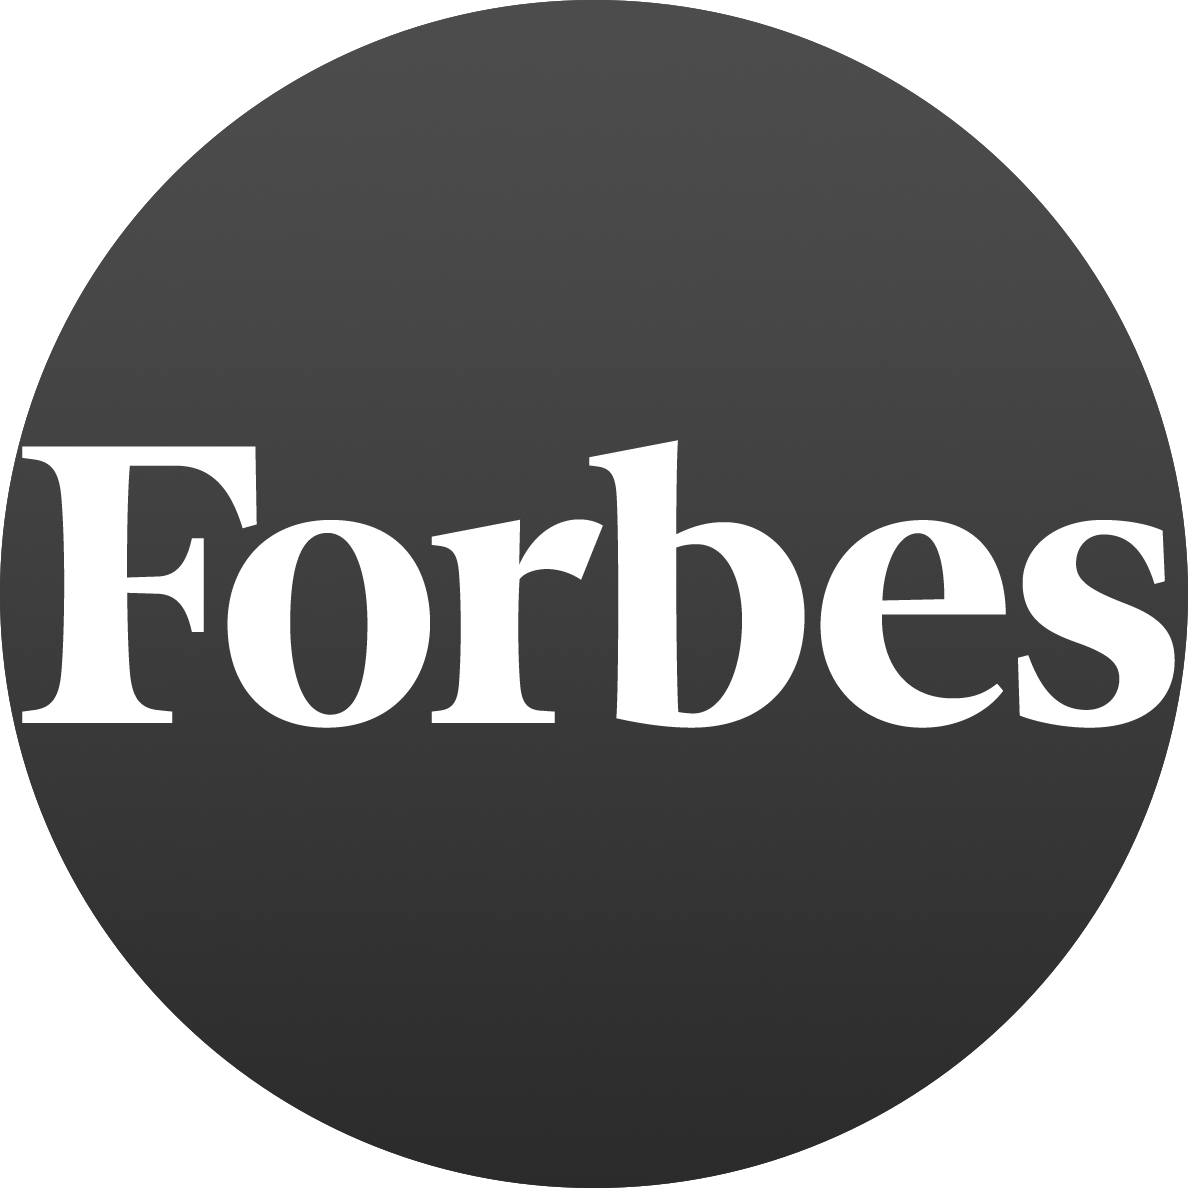 forbes_1200x1200.png